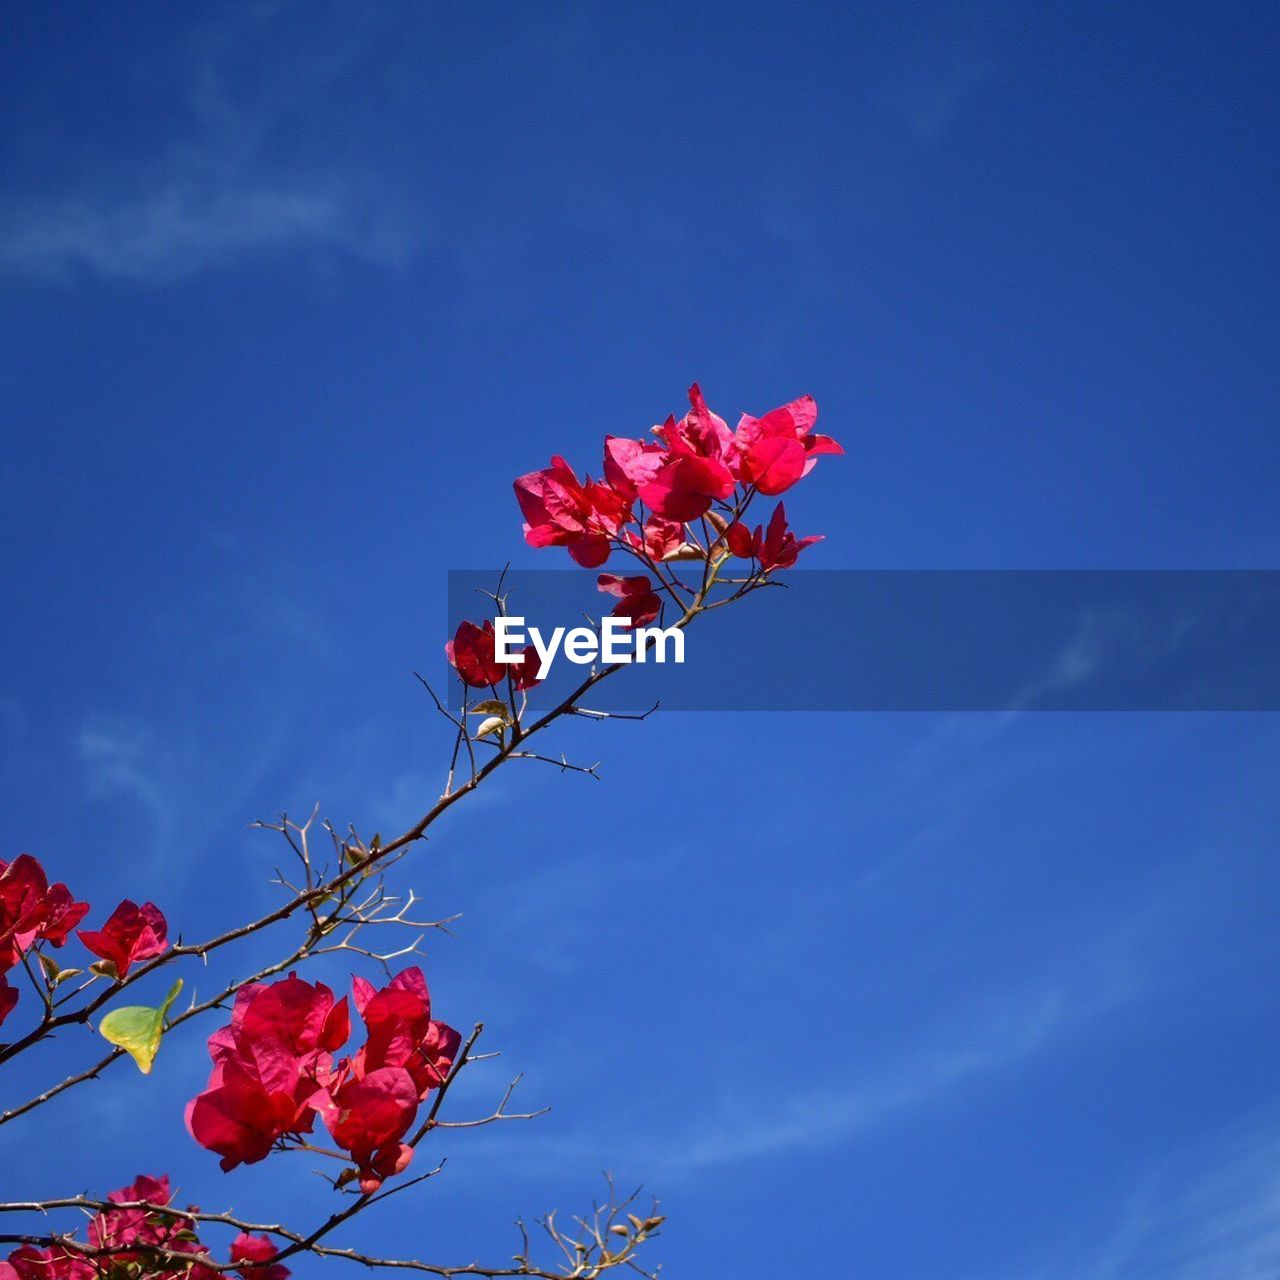 flower, fragility, growth, beauty in nature, tree, freshness, nature, petal, pink color, low angle view, sky, branch, no people, blossom, red, springtime, day, blooming, flower head, blue, outdoors, leaf, bougainvillea, close-up